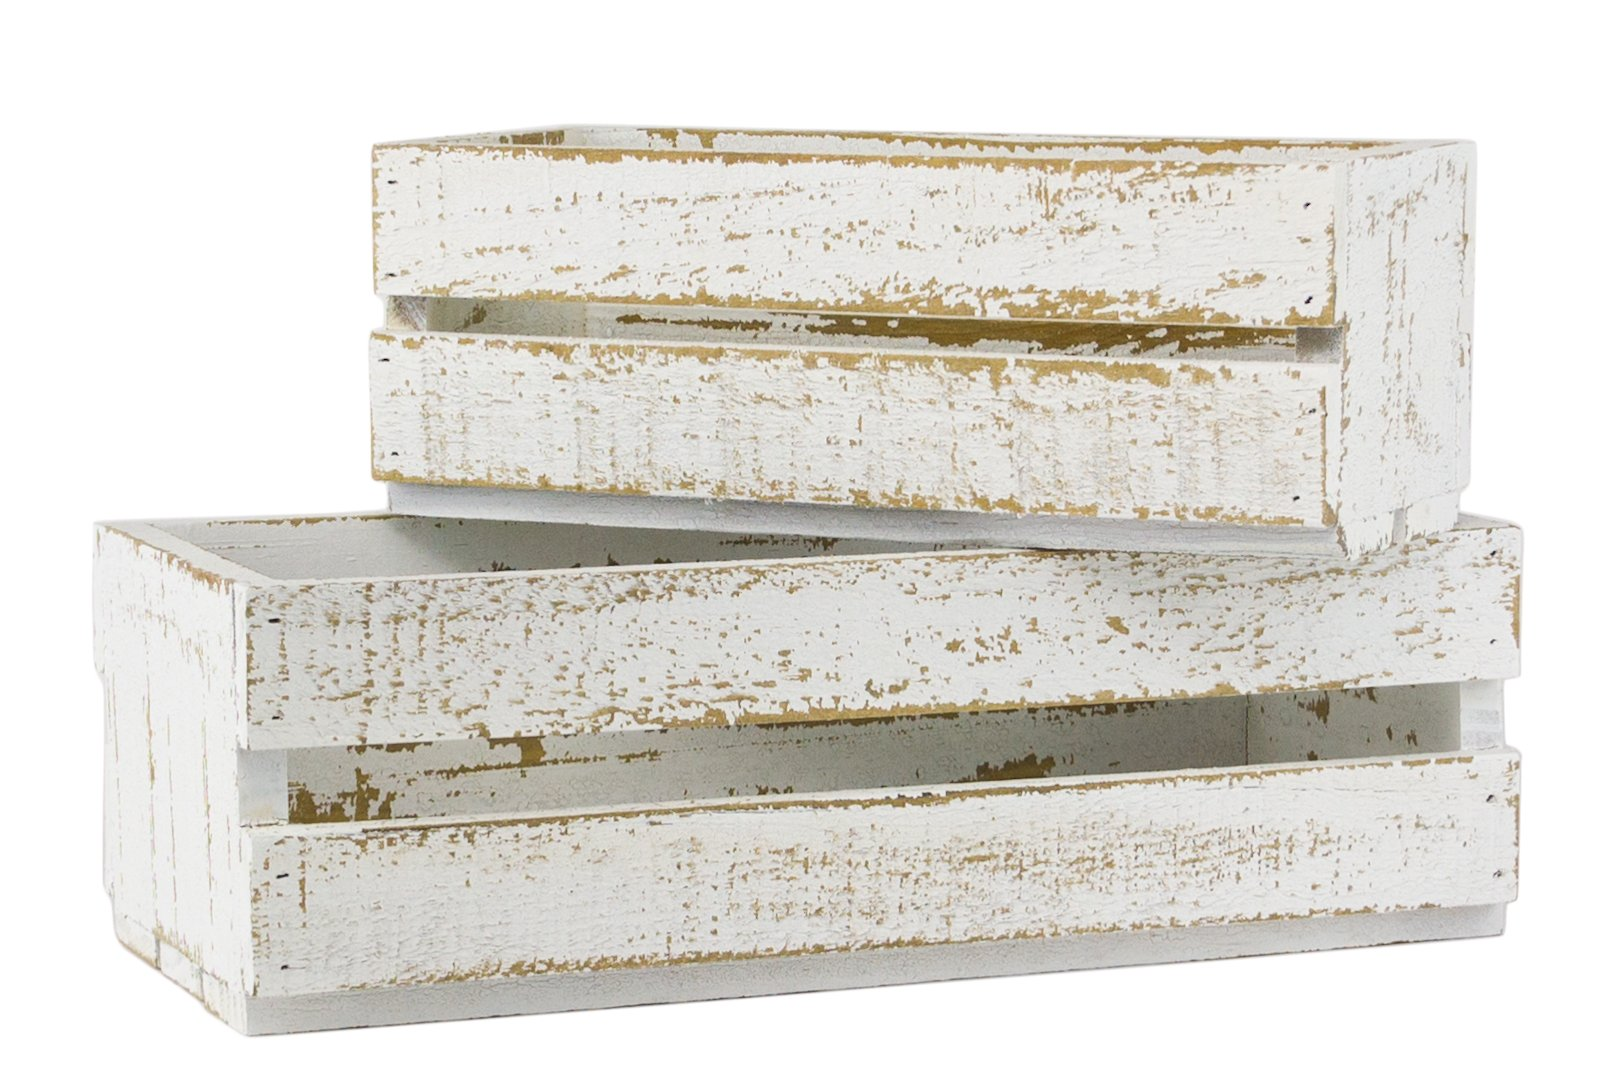 Farmhouse Distressed White Wooden Crates for Vintage Shabby Chic Home Decor, Set of 2